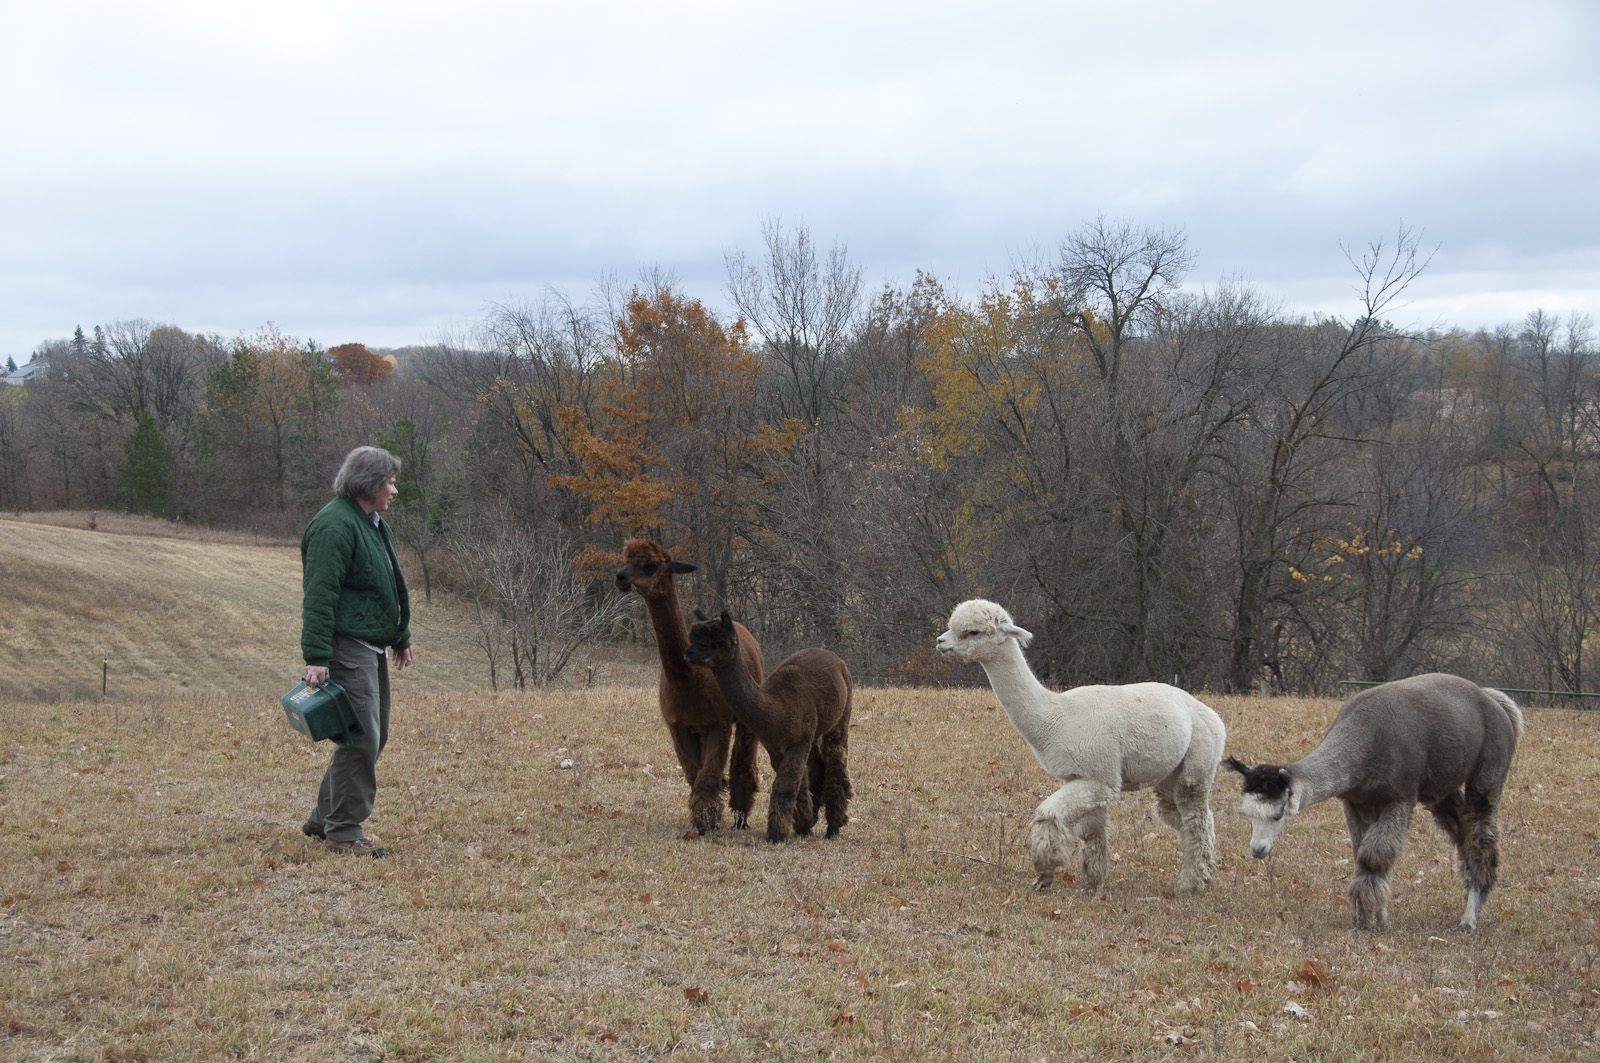 Alpacas-Screen_Resolution-©2011-Colby_Abazs-www.colorlightphotography.com-0729